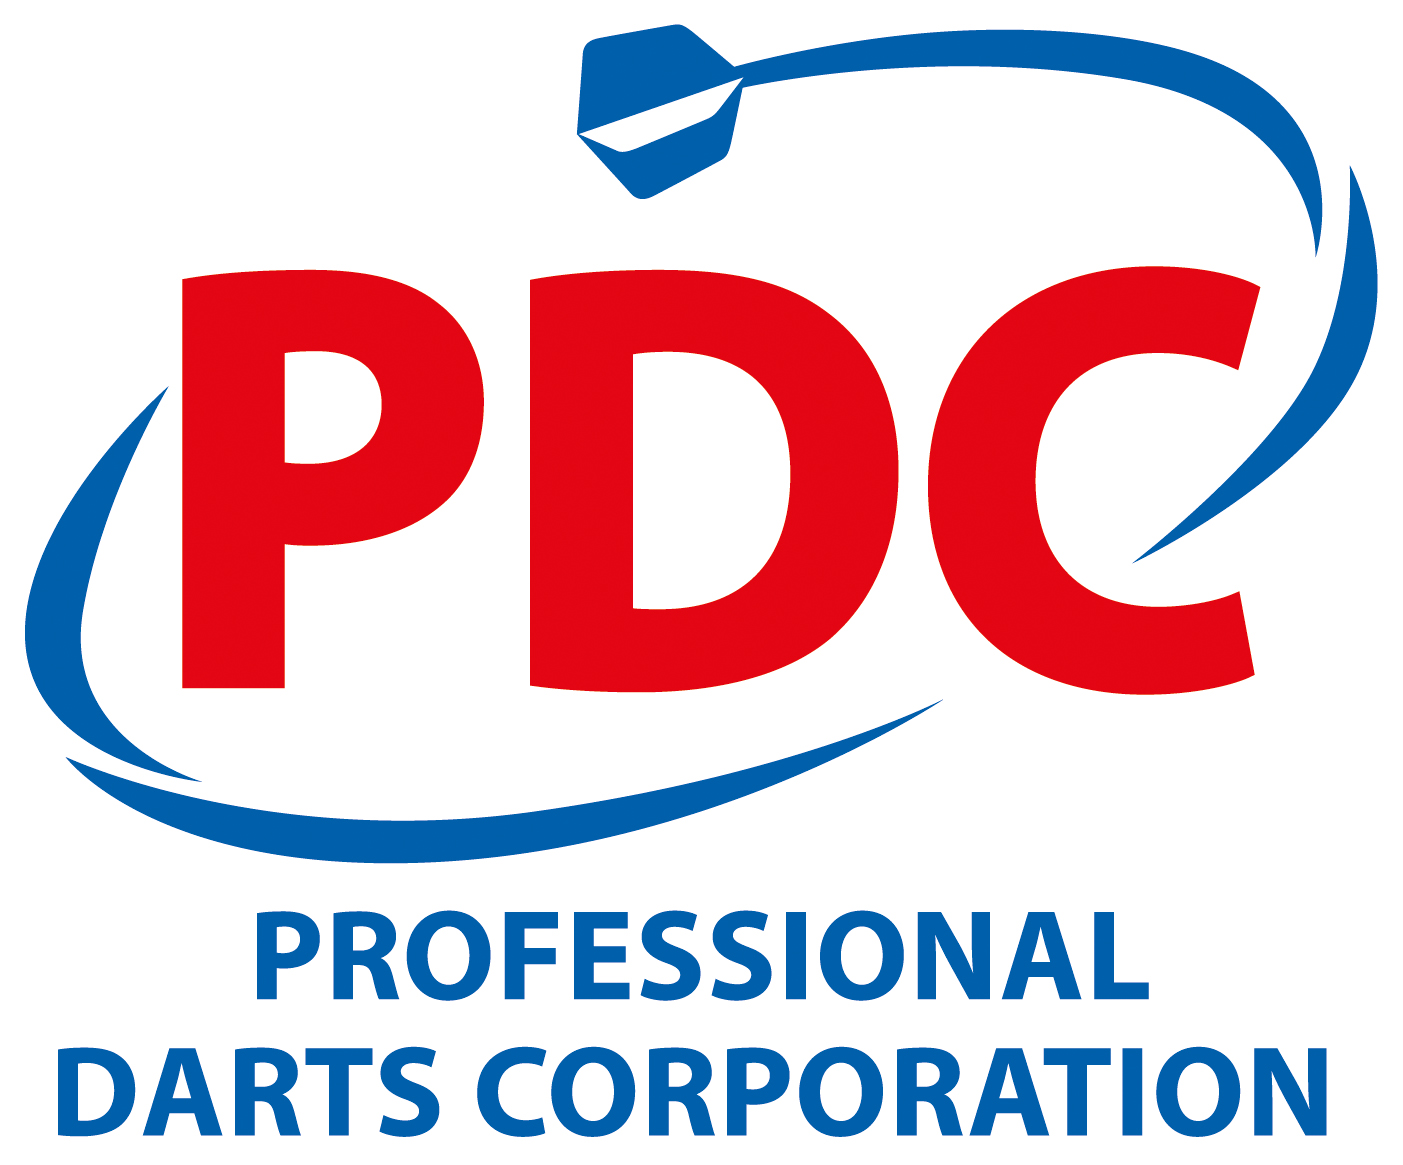 pdc_4colour_pc.jpg